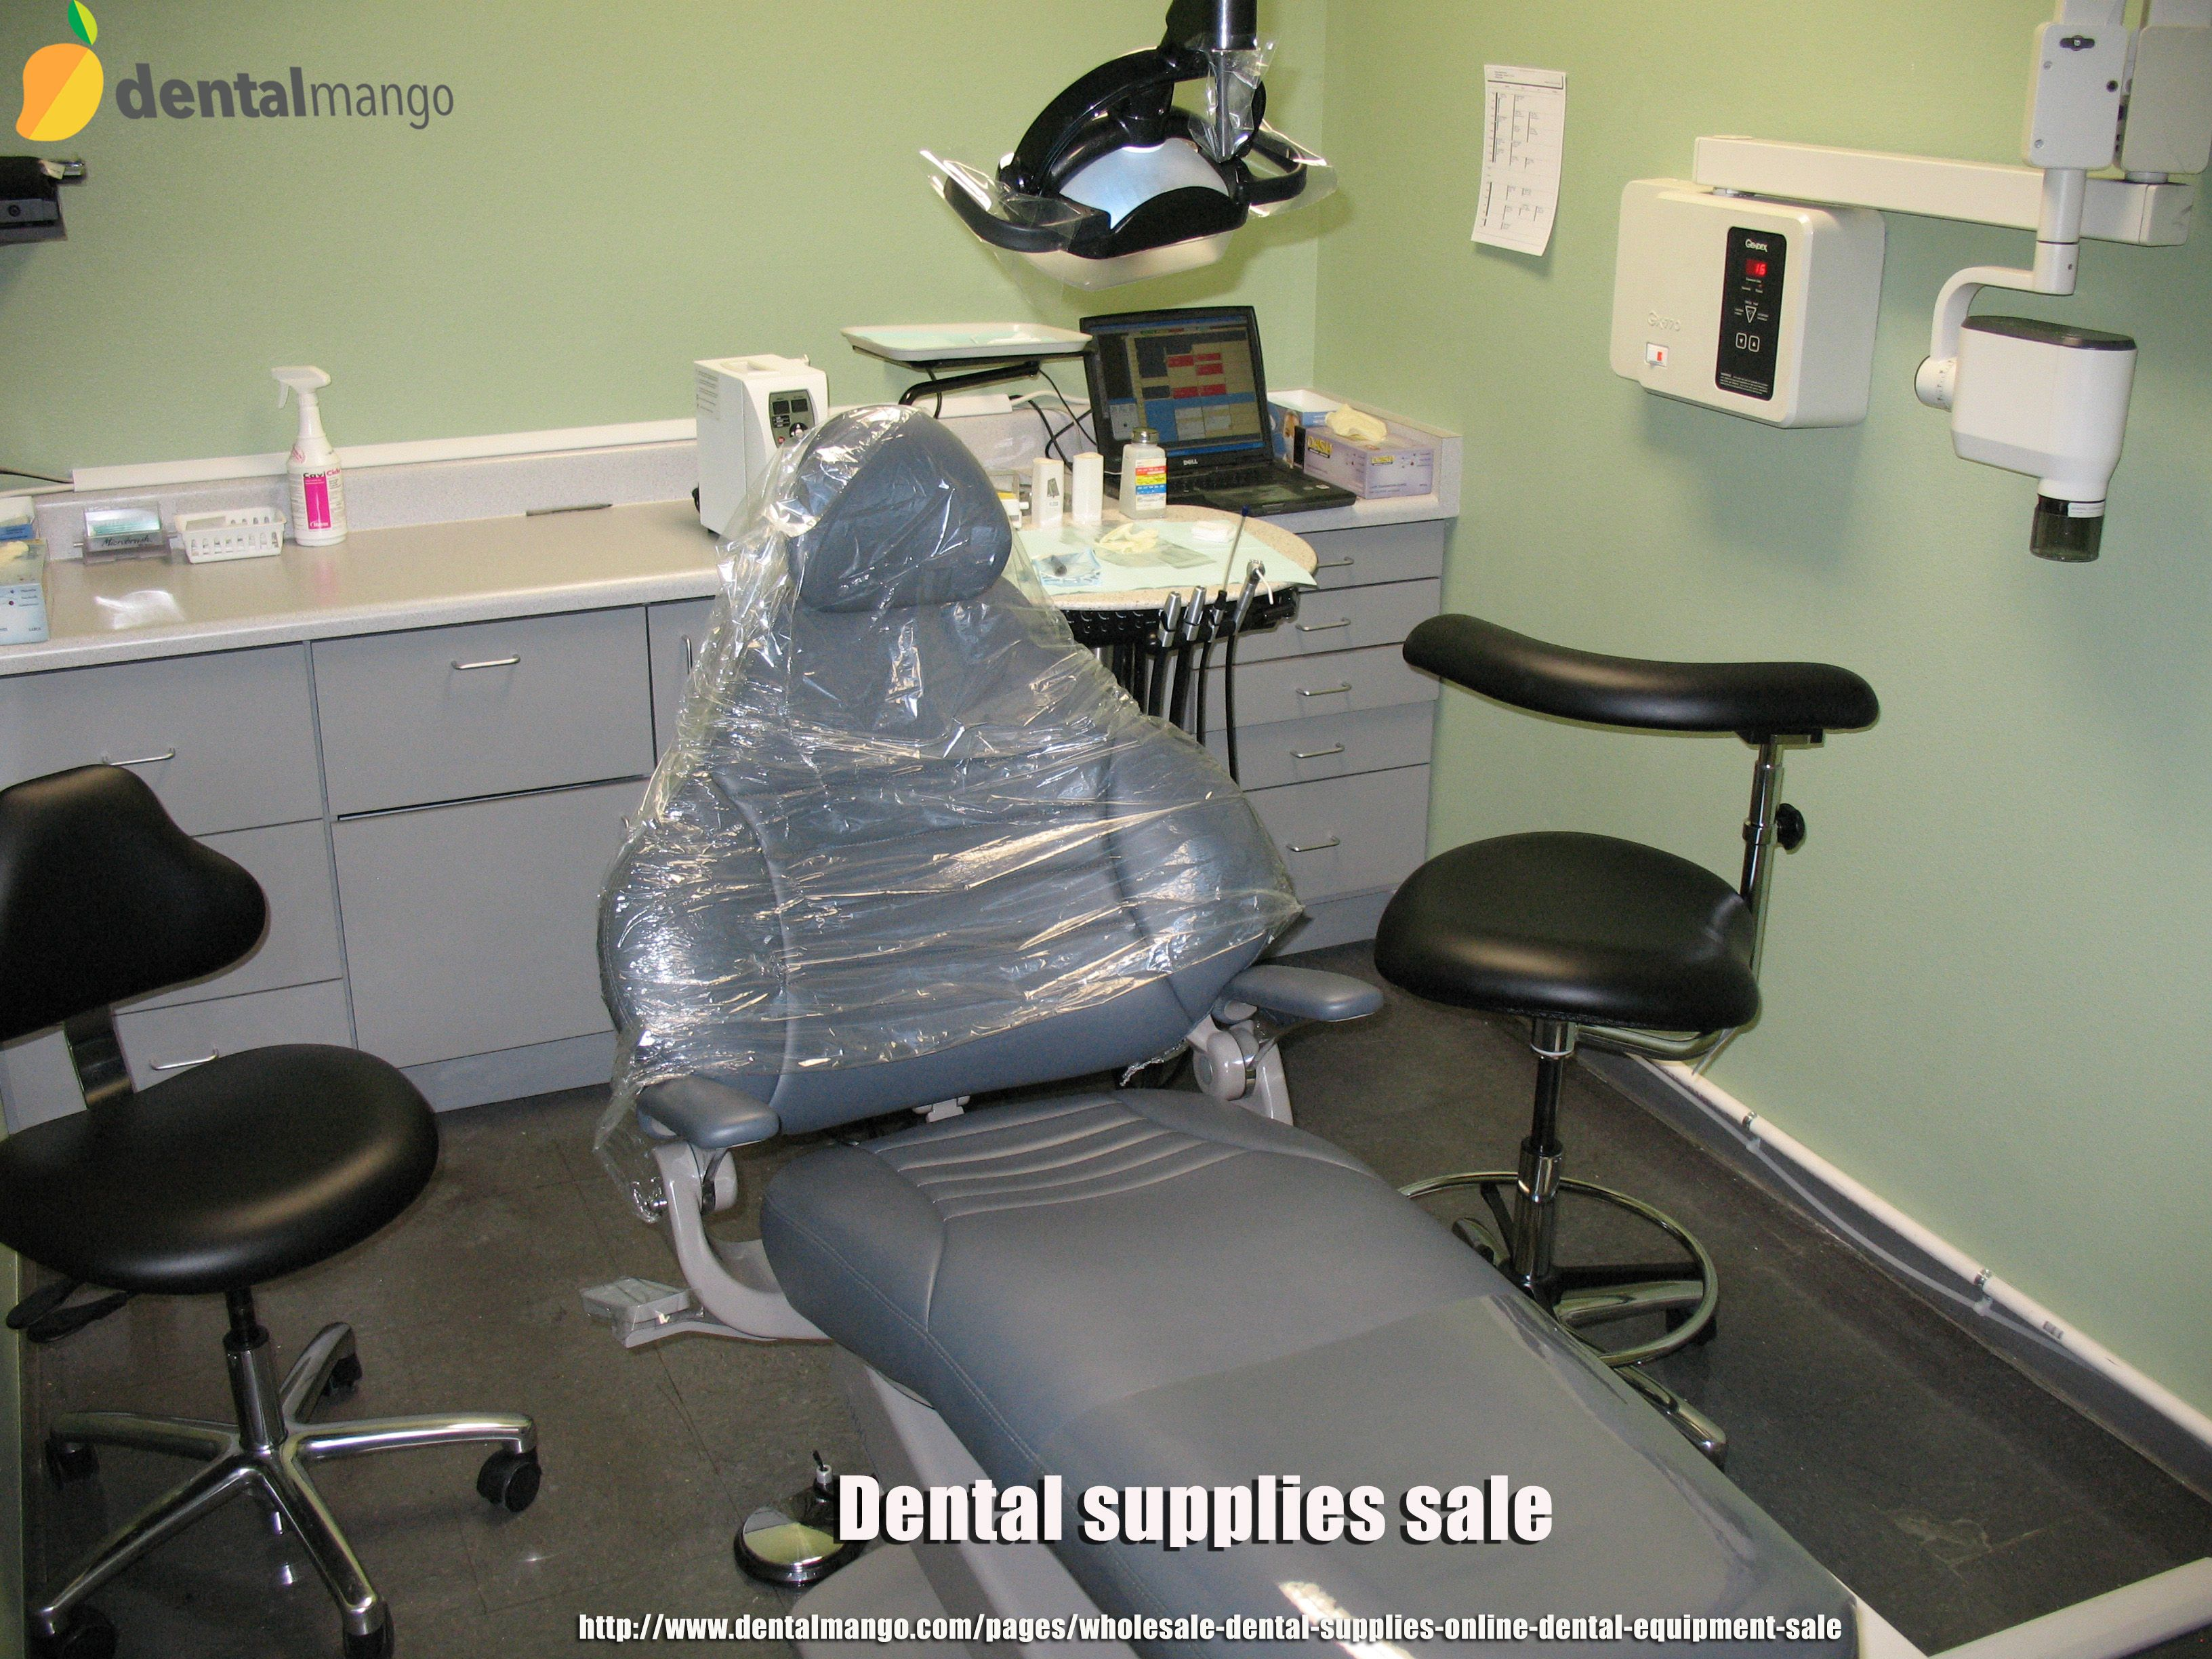 Get high quality dental supply sale online in all over USA only on http://www.dentalmango.com/pages/wholesale-dental-supplies-online-dental-equipment-sale